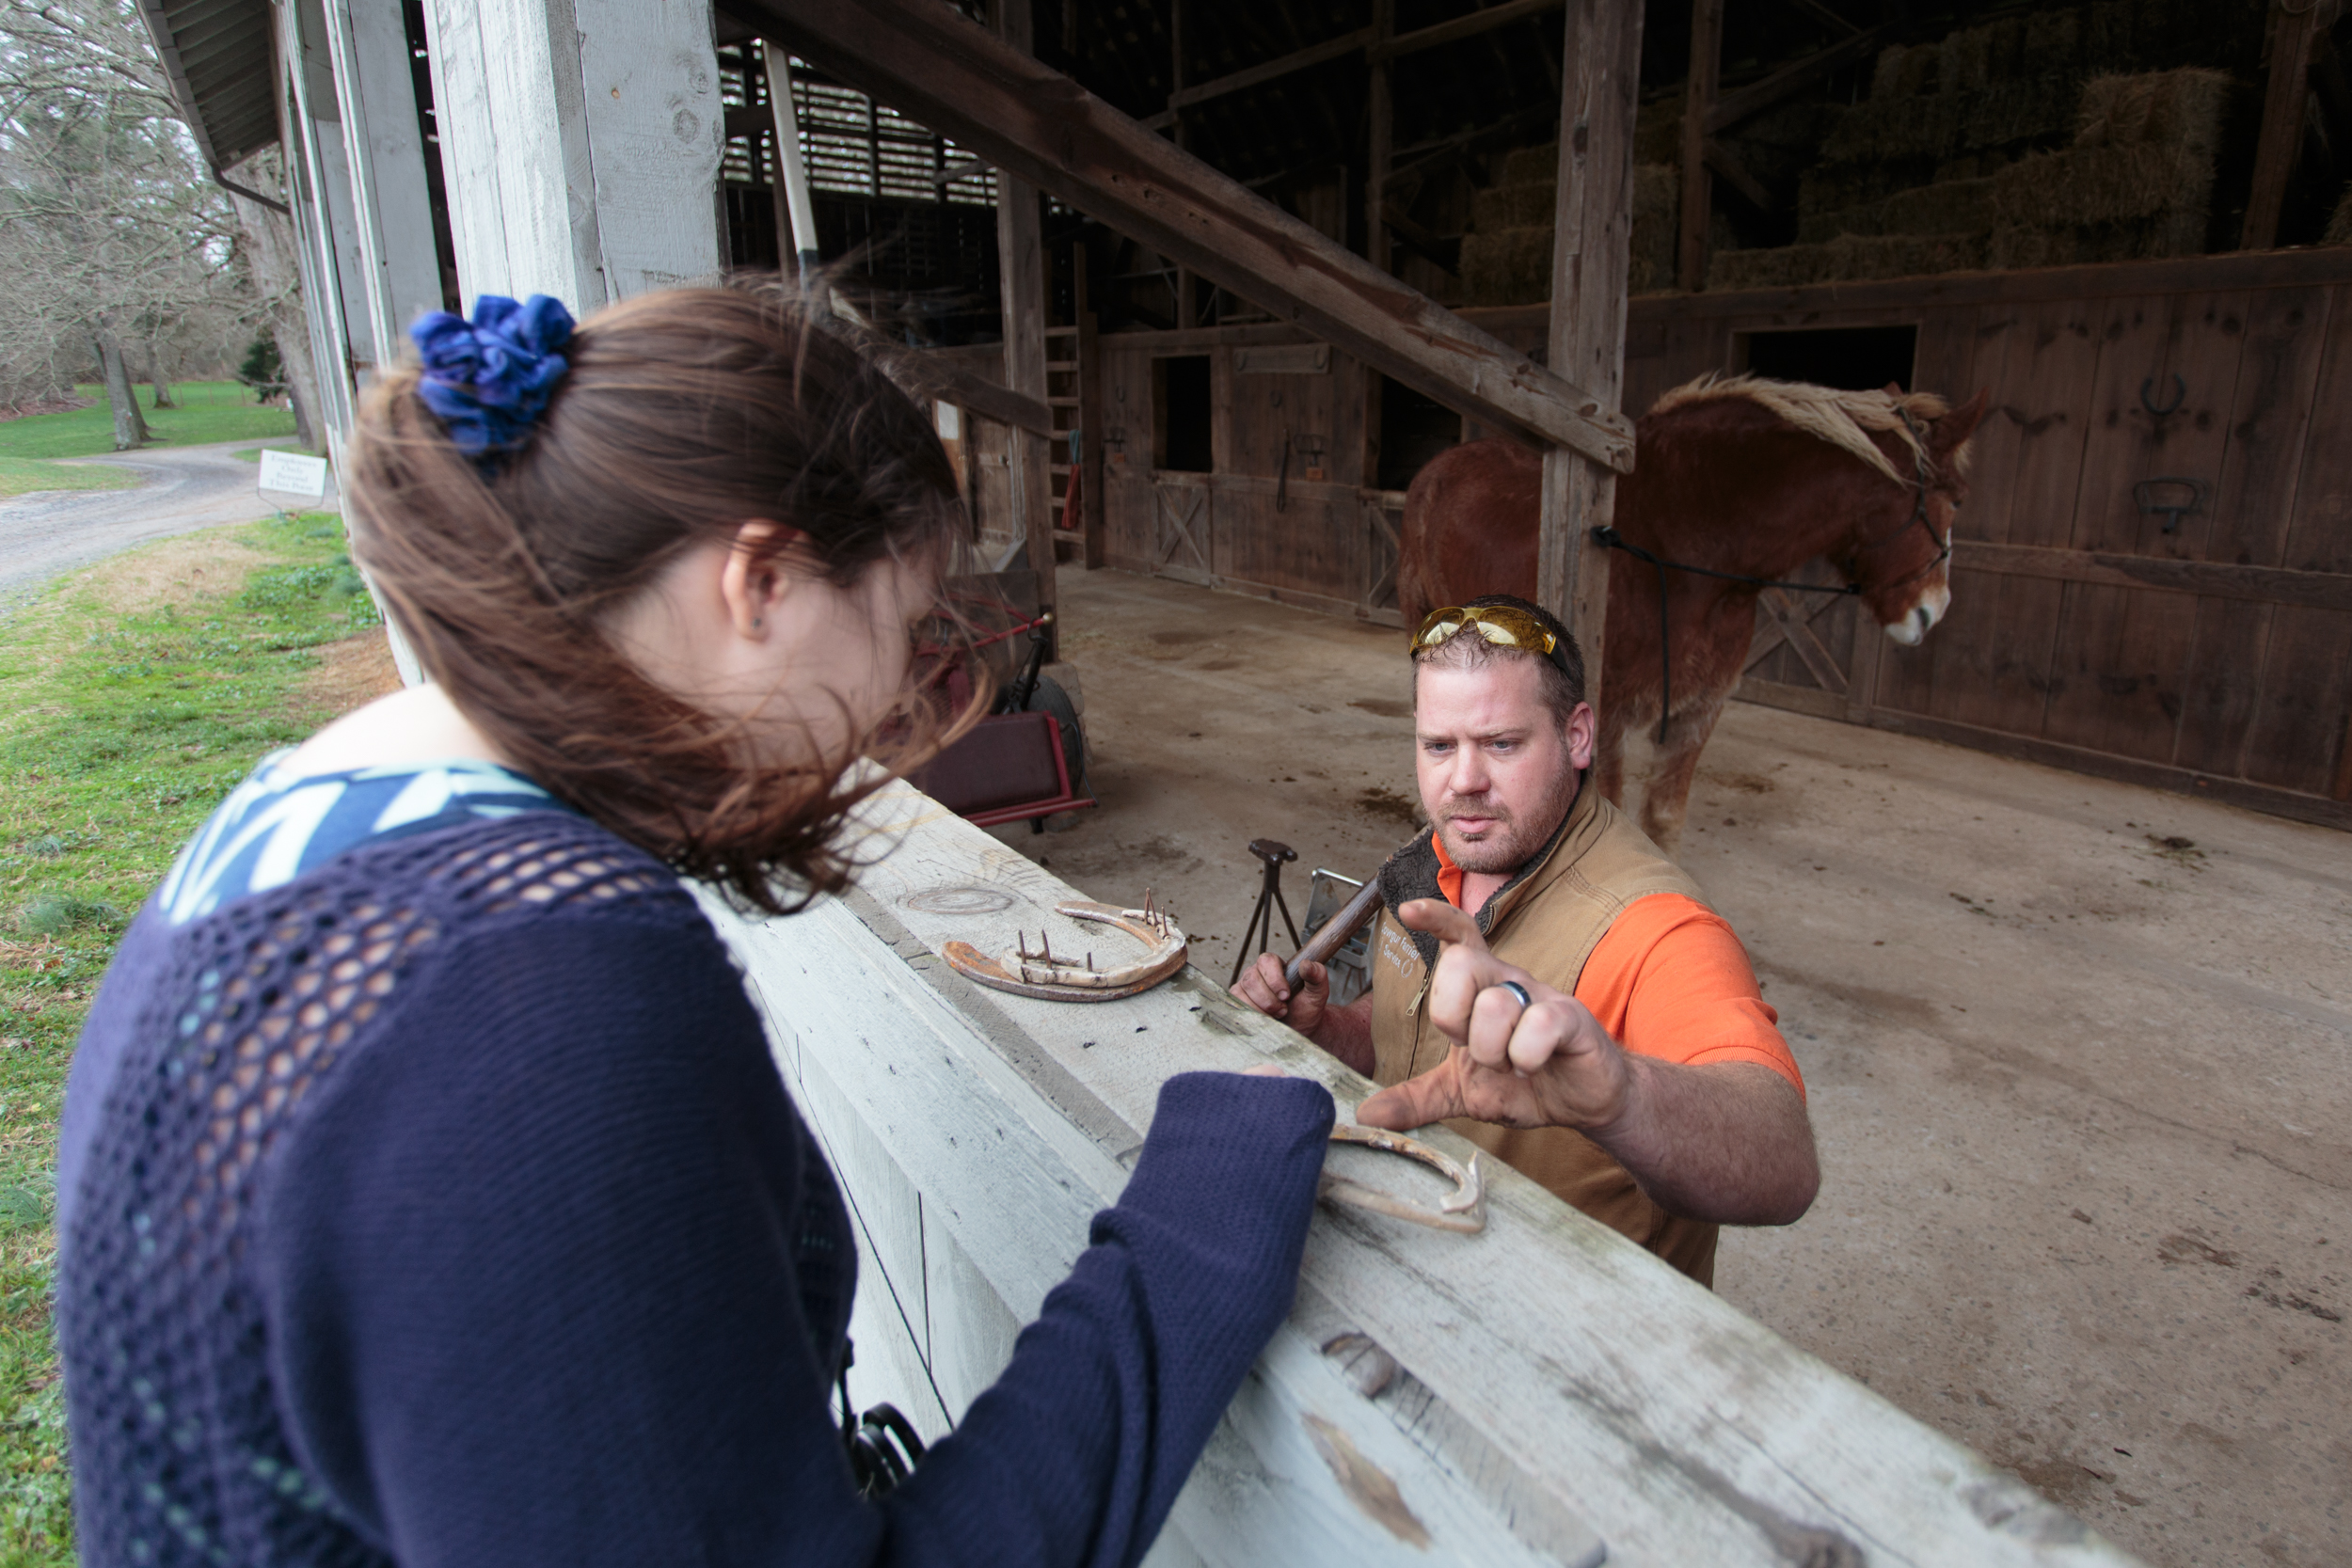 We chatted with a horse caretaker, educating us on how to replace horseshoes.